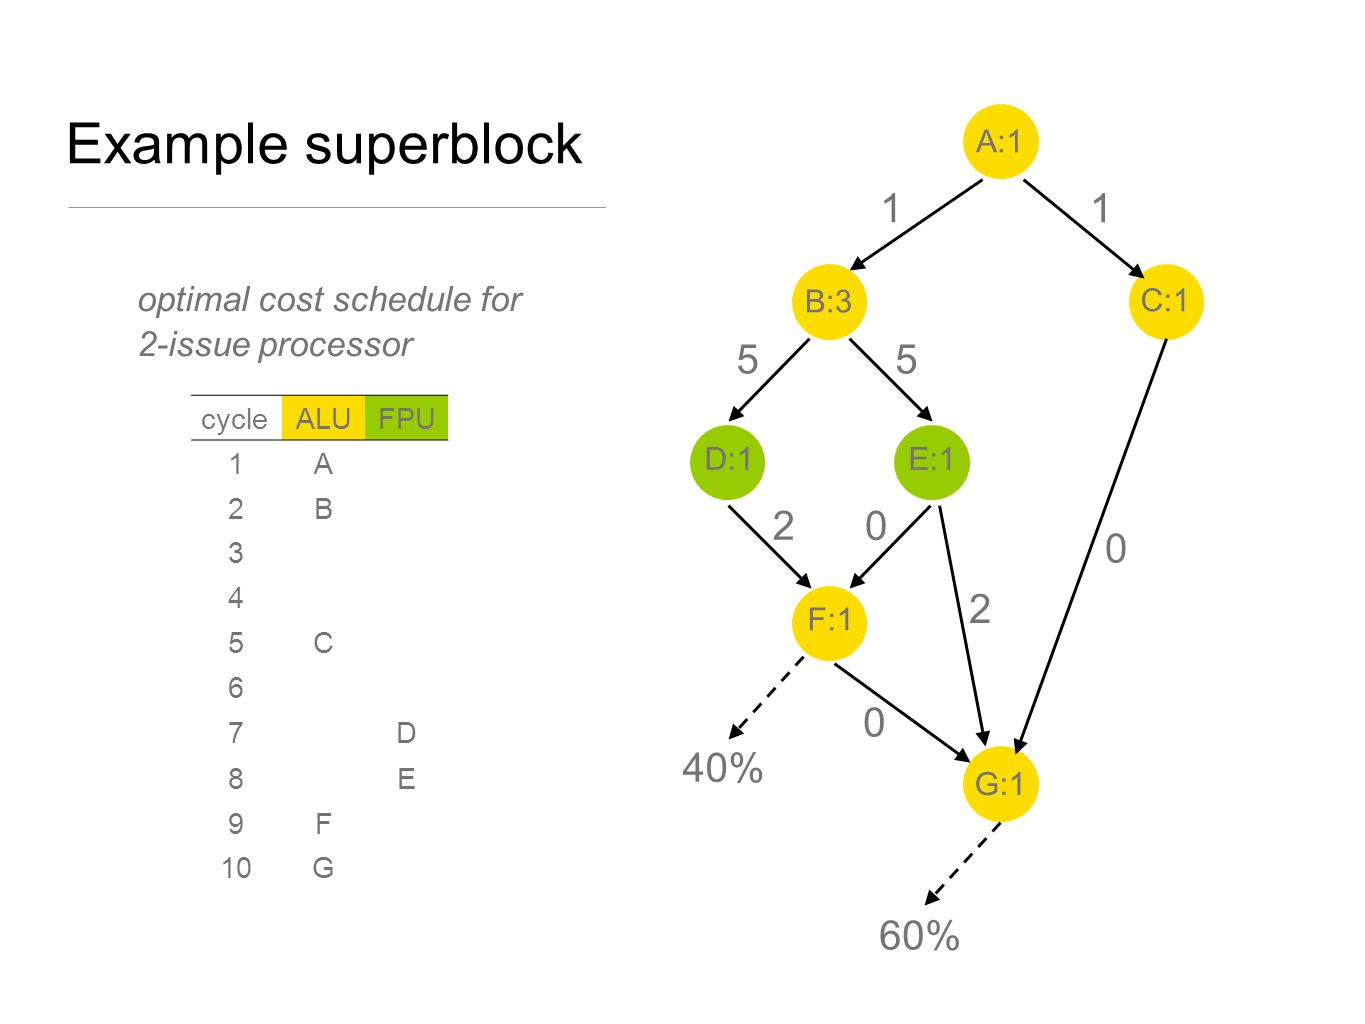 Example superblock 1. A:1. D:1. C:1. E:1. F:1. G:1. 2. B:3. 40% 60% 5. optimal cost schedule for 2-issue processor.